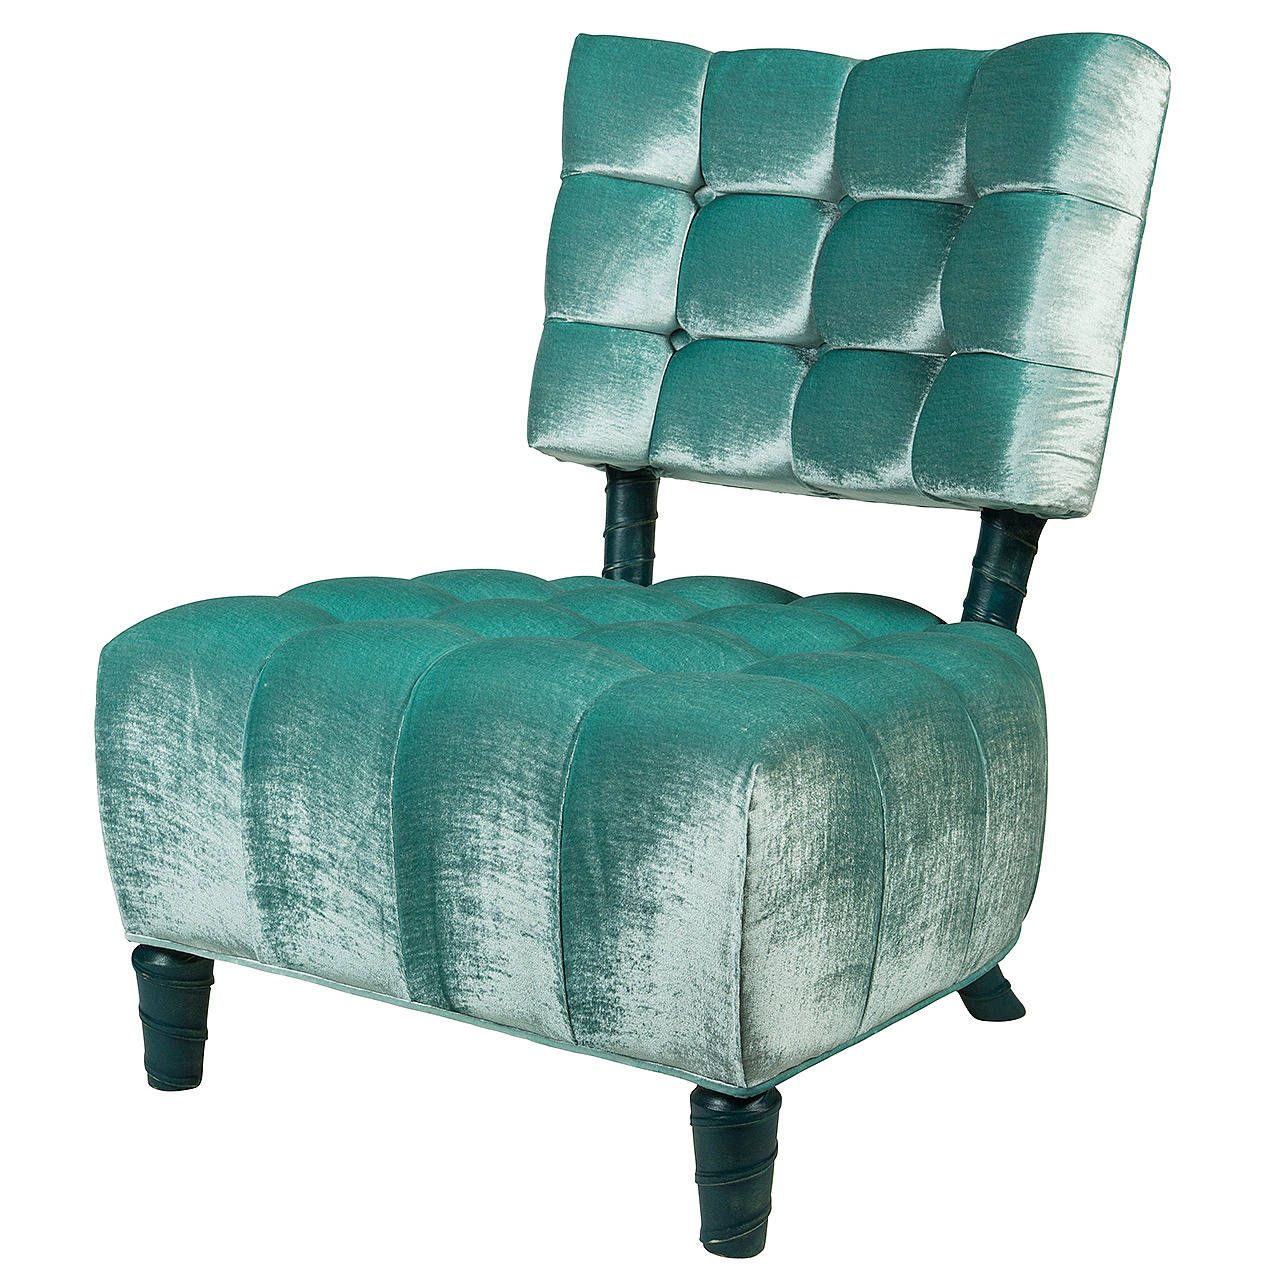 Marvelous Biscuit Tufted Slipper Chair By William Haines For Sale